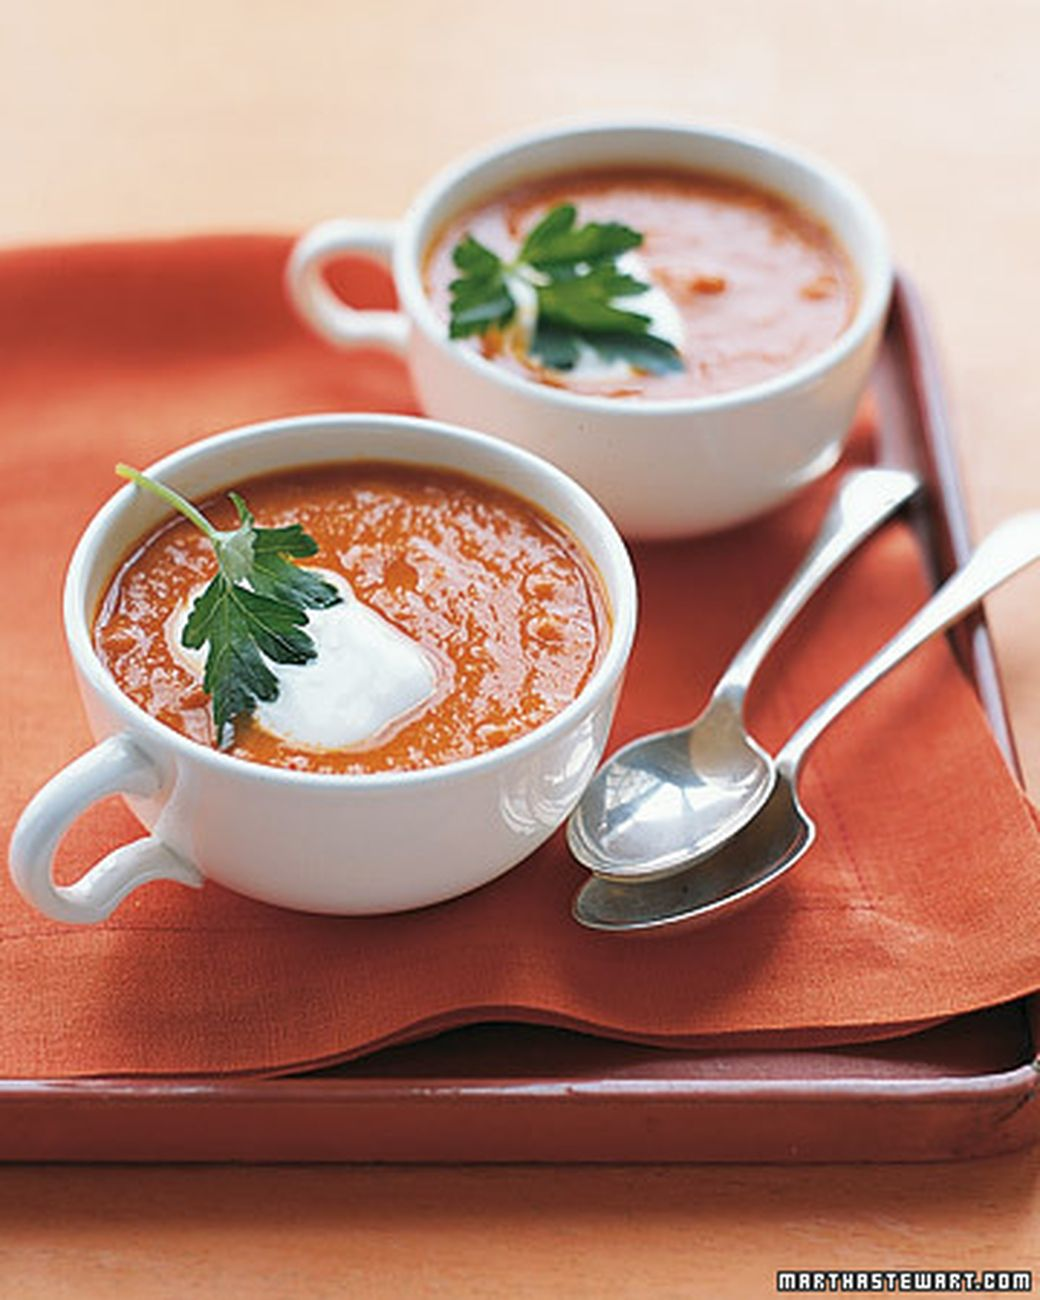 Spiced Chickpea and Tomato Soup | Martha Stewart Living - Thanks to the soup's garlic and red chiles, you'll be warmed up in no time.